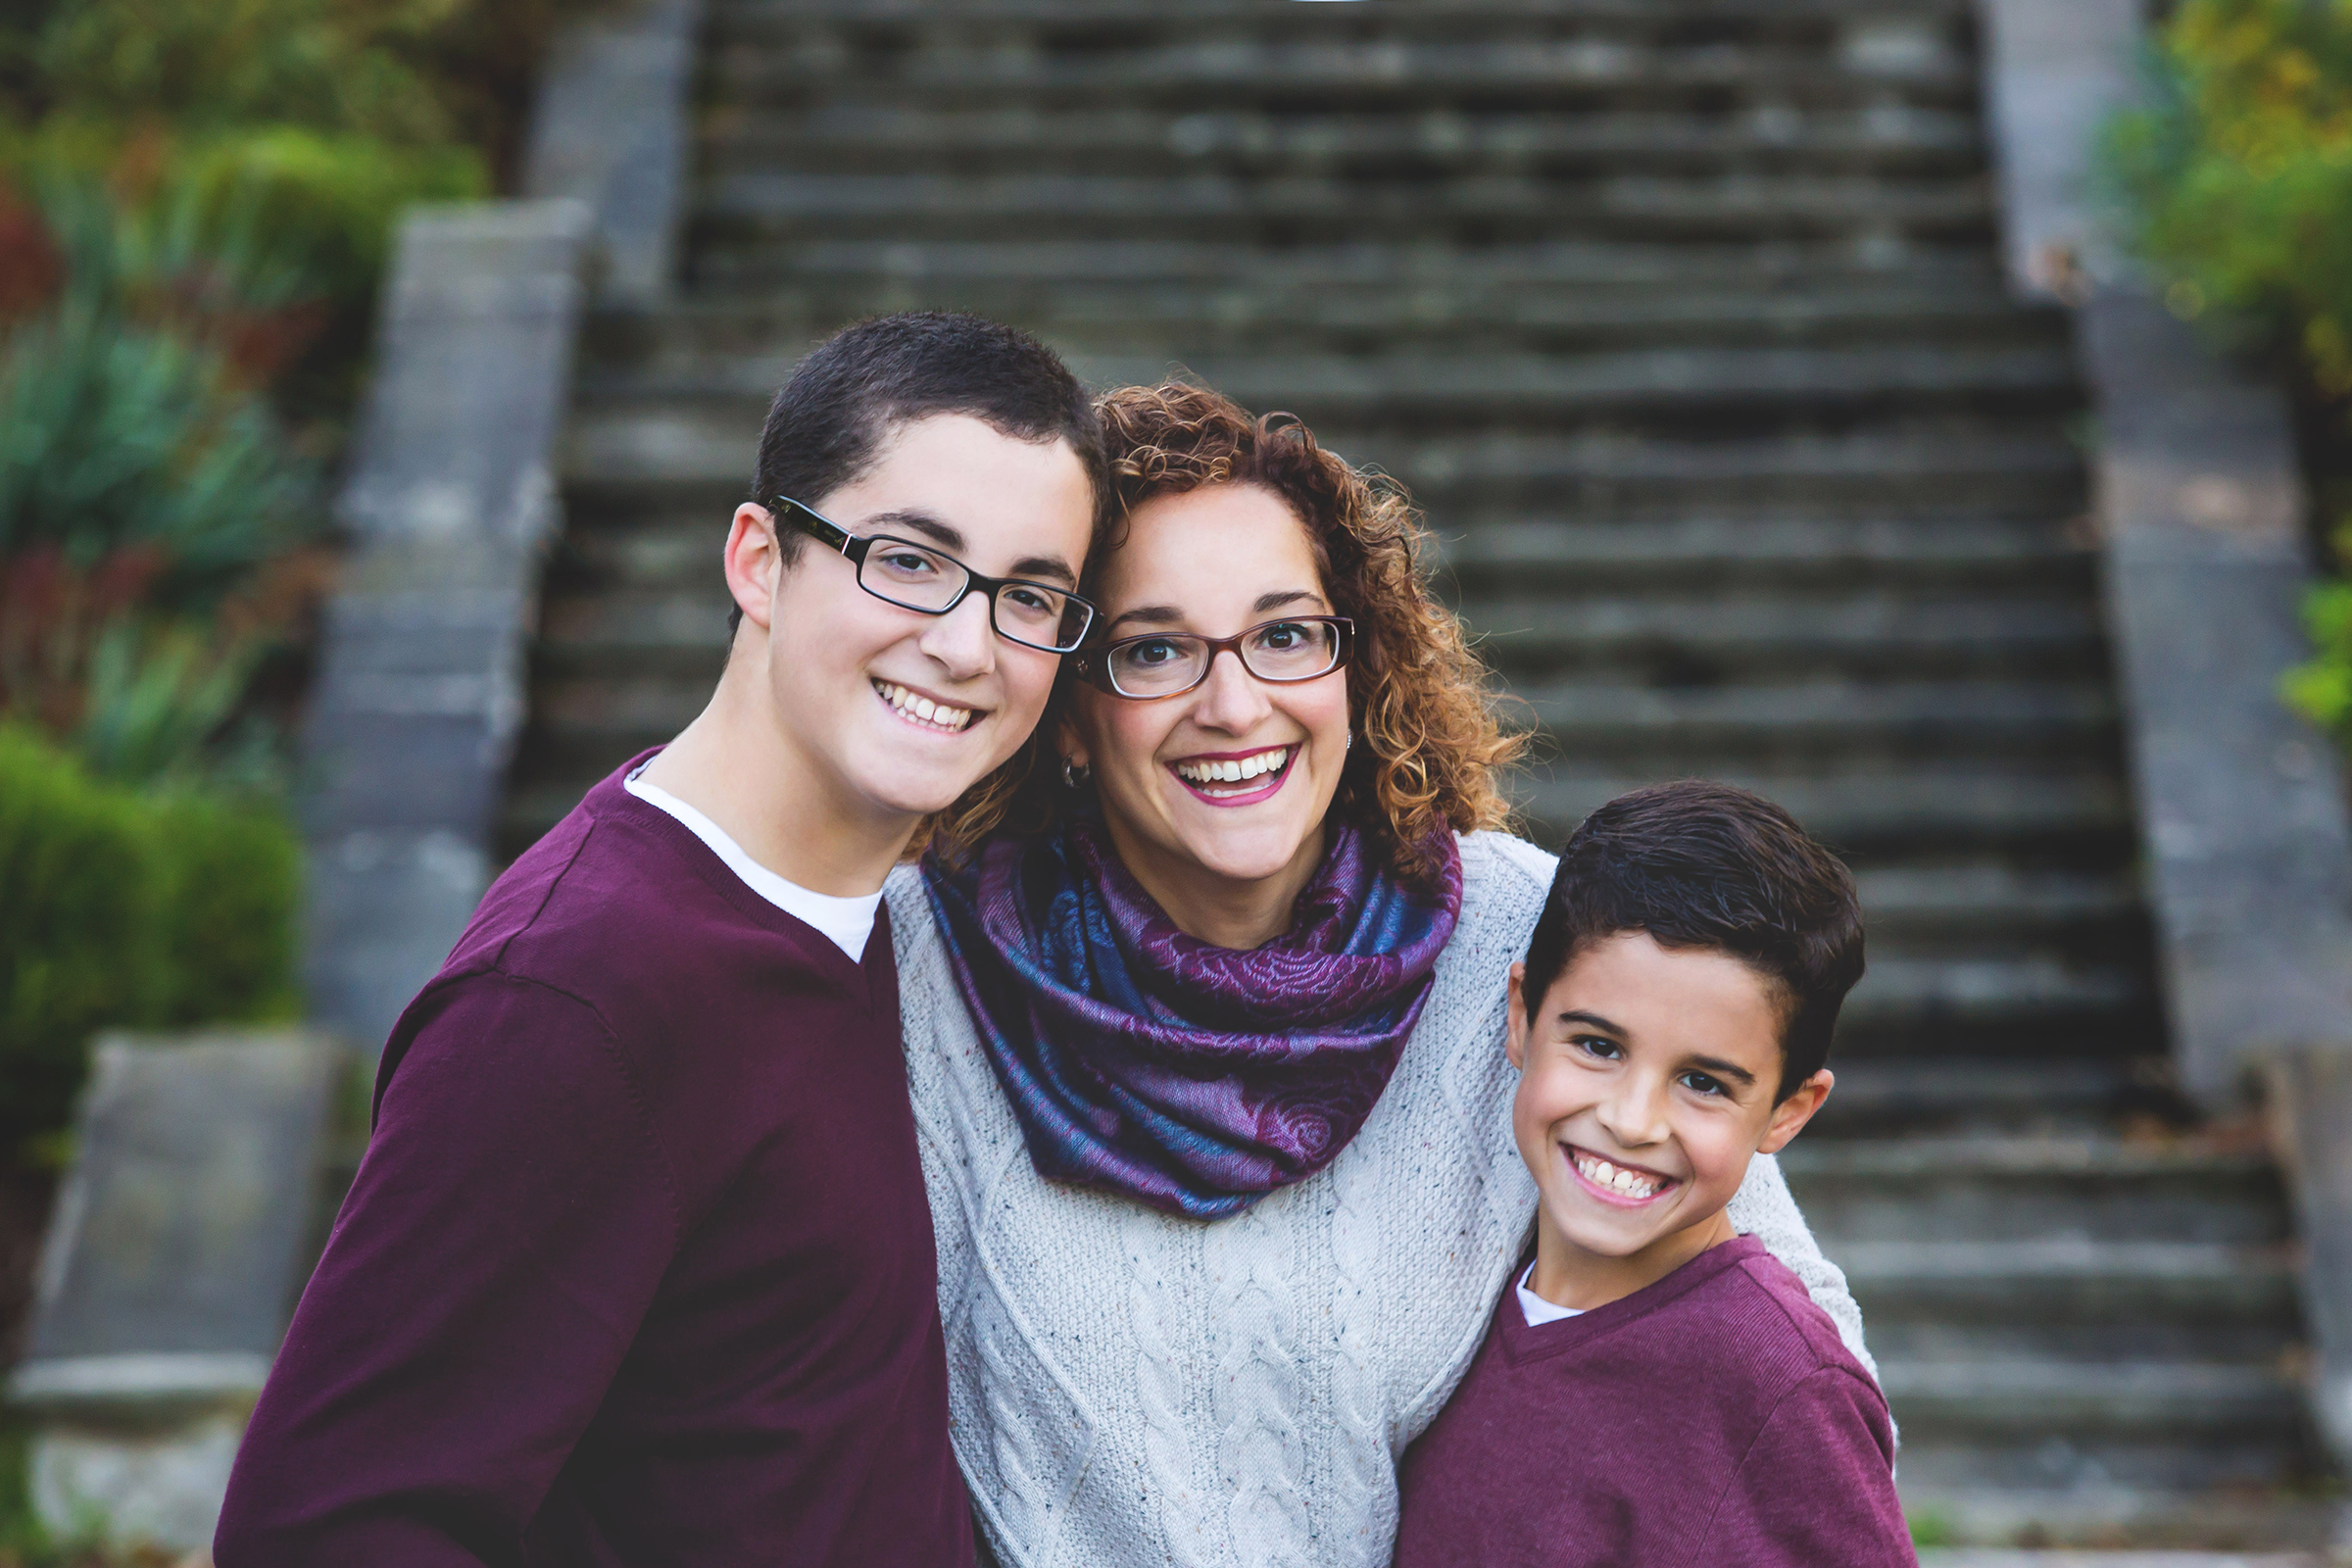 Family-Portraits-Hamilton-Stoney-Creek-Oakville-Burlington-Niagara-Photography-Moments-by-Lauren-Photographer-Lifestyle-Photo-Image4.png